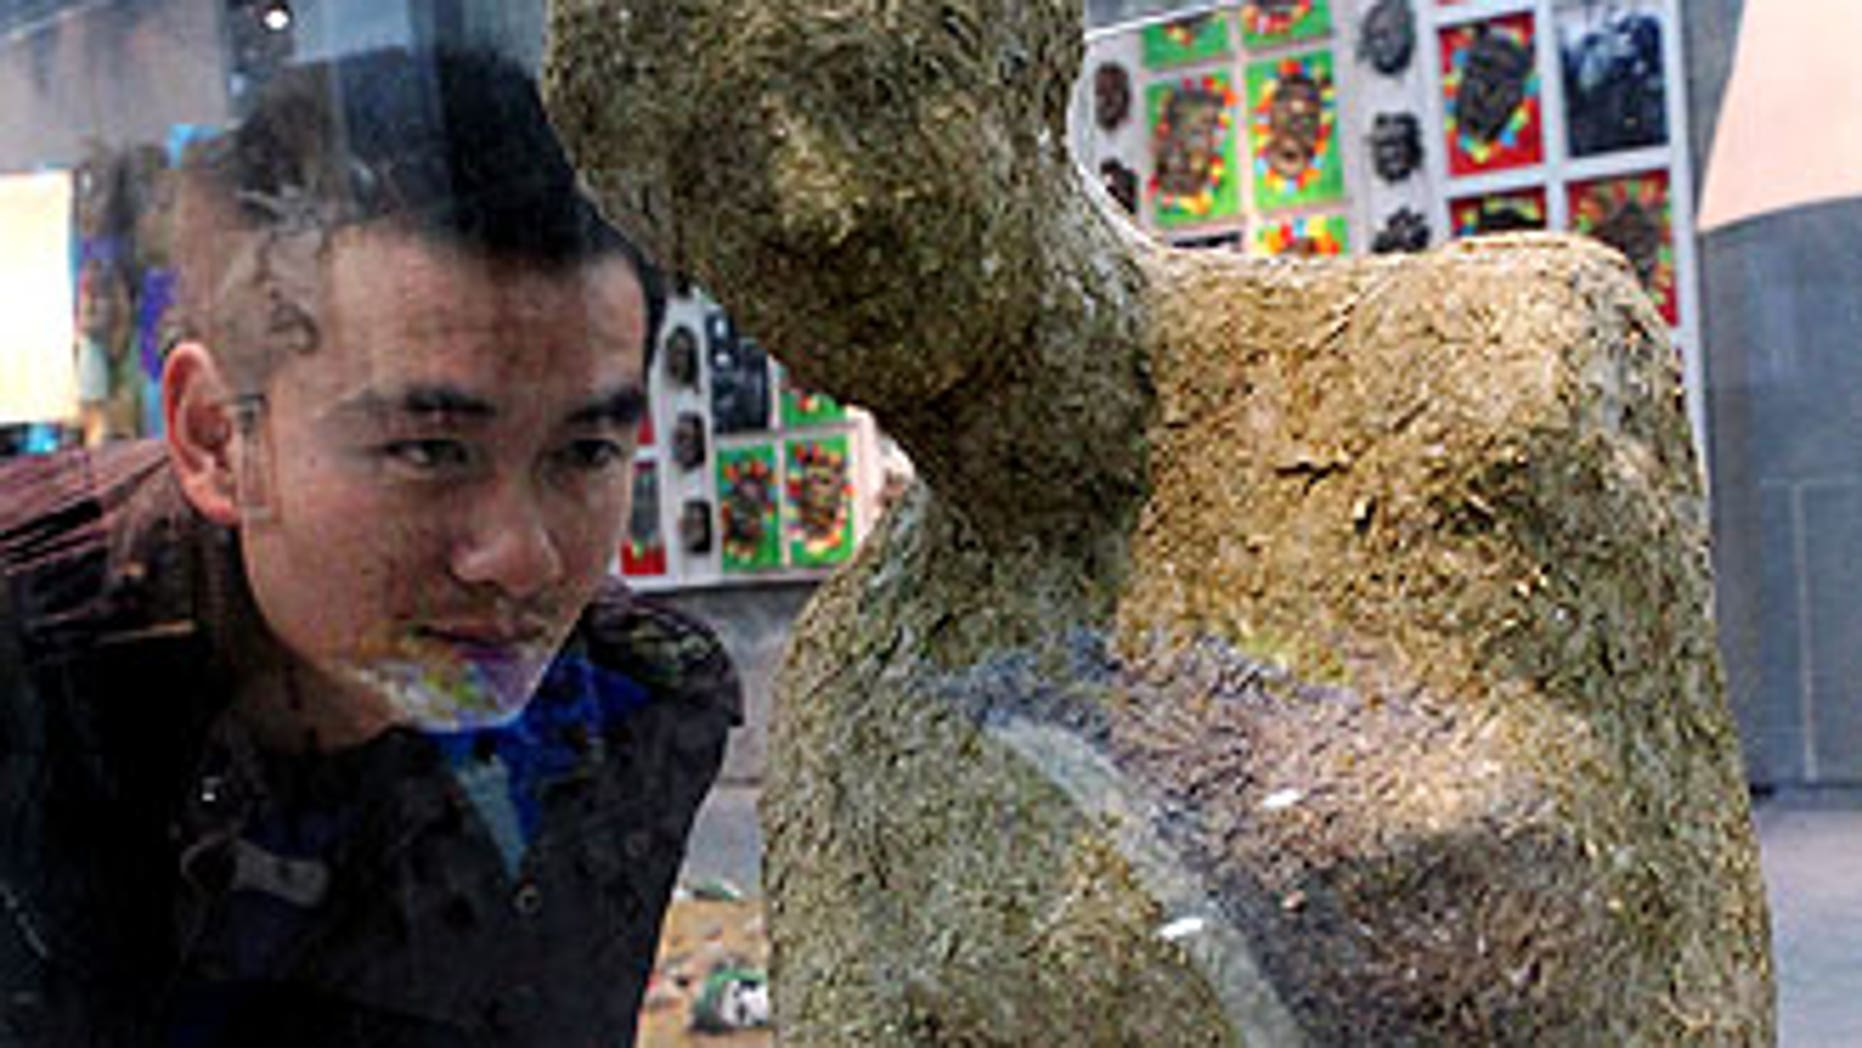 A replica of the famed Venus de Milo statue, made from panda dung, at an exhibition in Zhengzhou, central China Henan province.